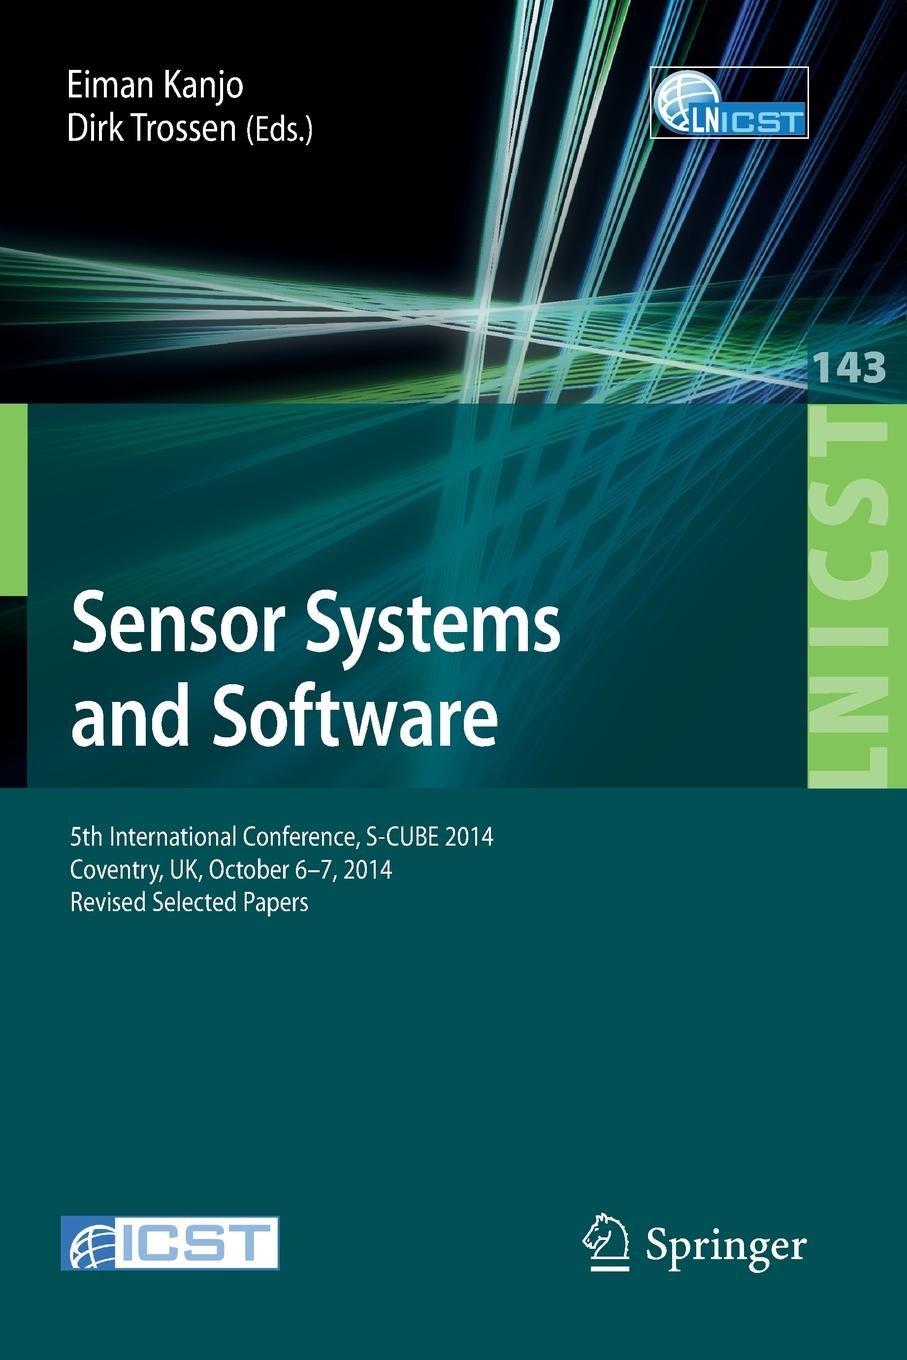 Sensor Systems and Software. 5th International Conference, S-CUBE 2014, Coventry, UK, October 6-7, 2014, Revised Selected Papers